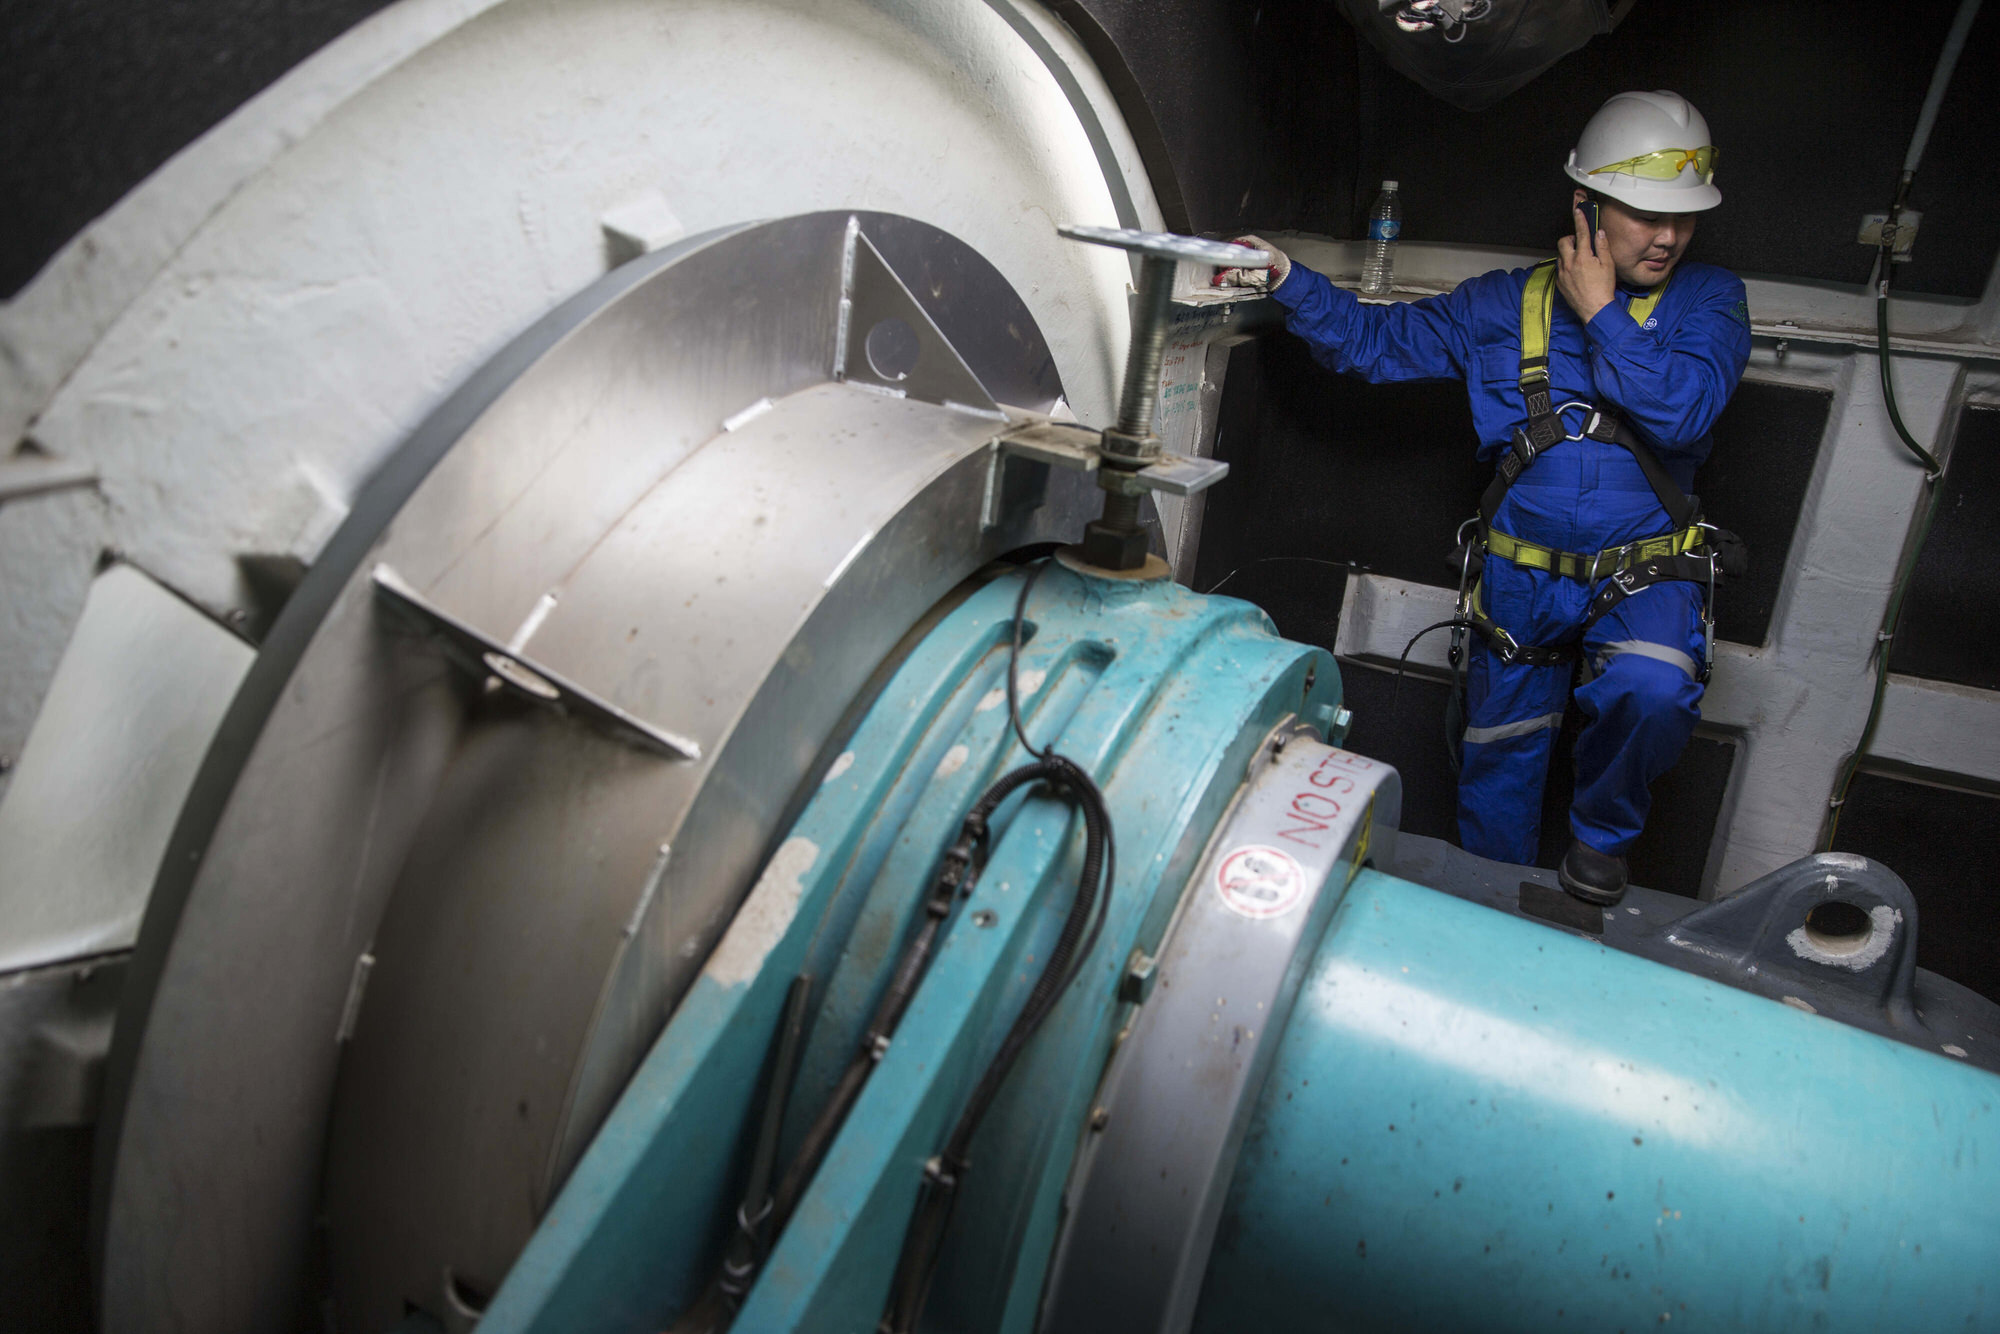 An engineer performs maintenance work inside the nacelle of a General Electric Co. (GE) wind turbine at the Salkhit Wind Farm operated by Clean Energy LLC, a unit of Newcom Group, stand on the steppe in Khongor district of Darkhan-Uul Province, Mongolia, on Thursday, July 21, 2016. Newcom completed the 50-megawatt Salkhit project in 2013 at a cost of $120 million, marking the first time in 30 years that a new power plant was connected to Mongolia's central grid. Photographer: Taylor Weidman/Bloomberg